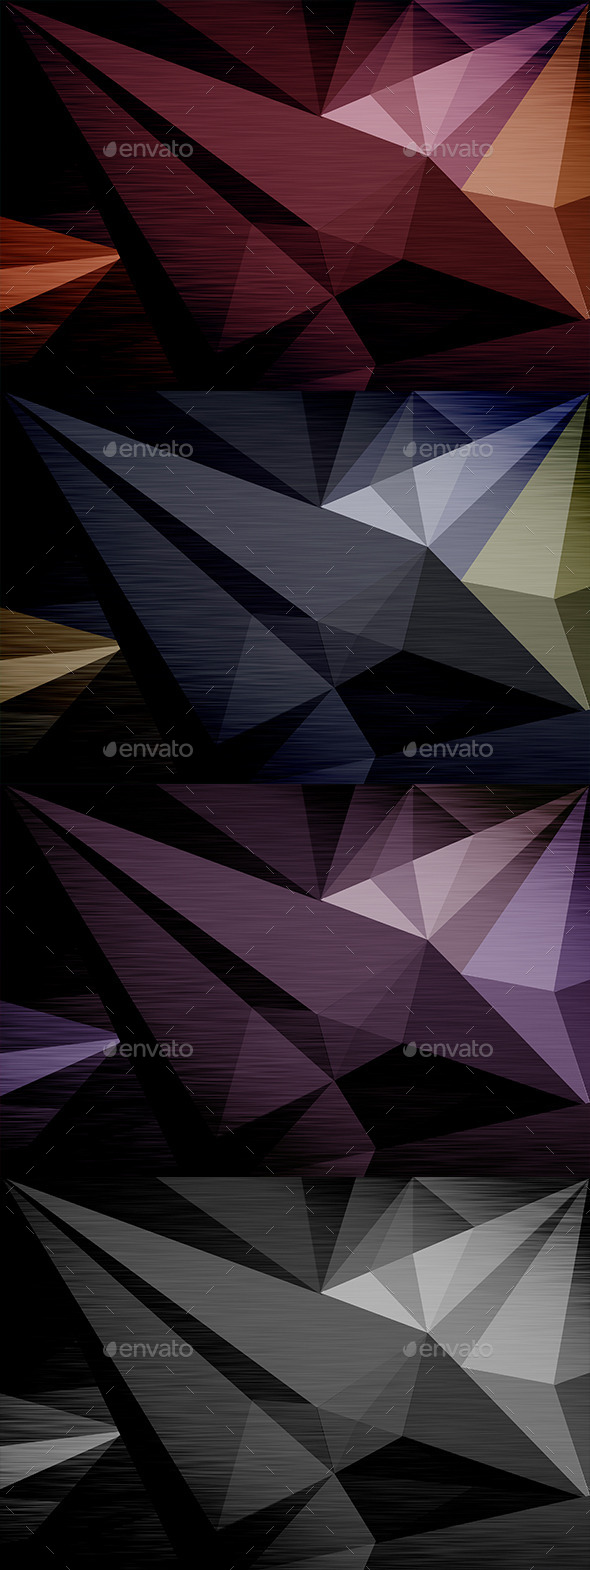 GraphicRiver 8 Polygon Backgrounds Pack 10893103